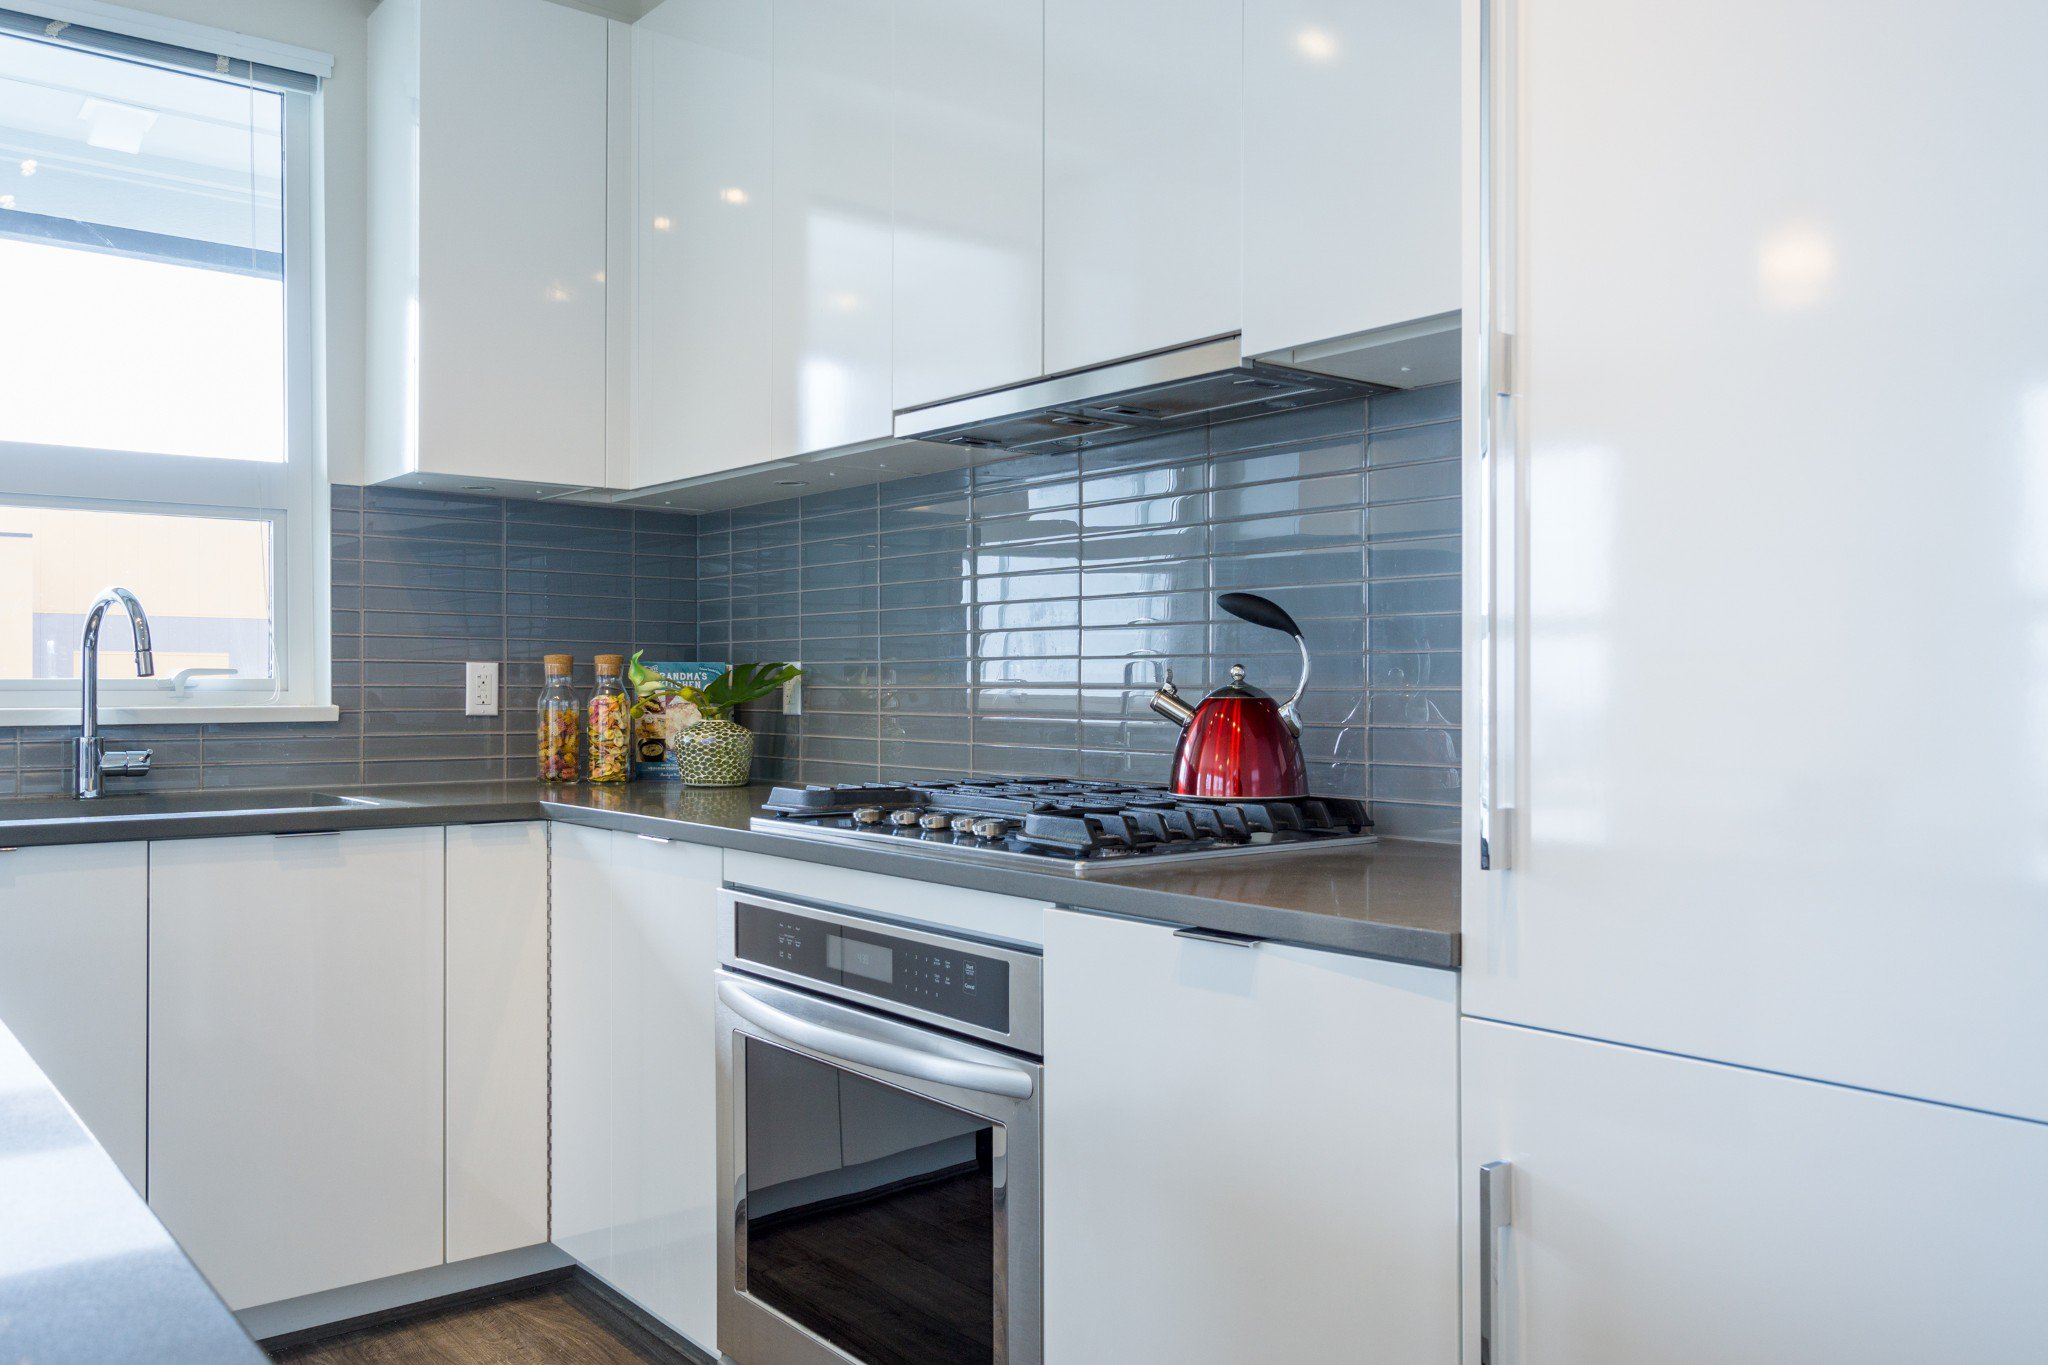 """Photo 5: Photos: 303 9311 ALEXANDRA Road in Richmond: West Cambie Condo for sale in """"ALEXANDRA COURT"""" : MLS®# R2347629"""